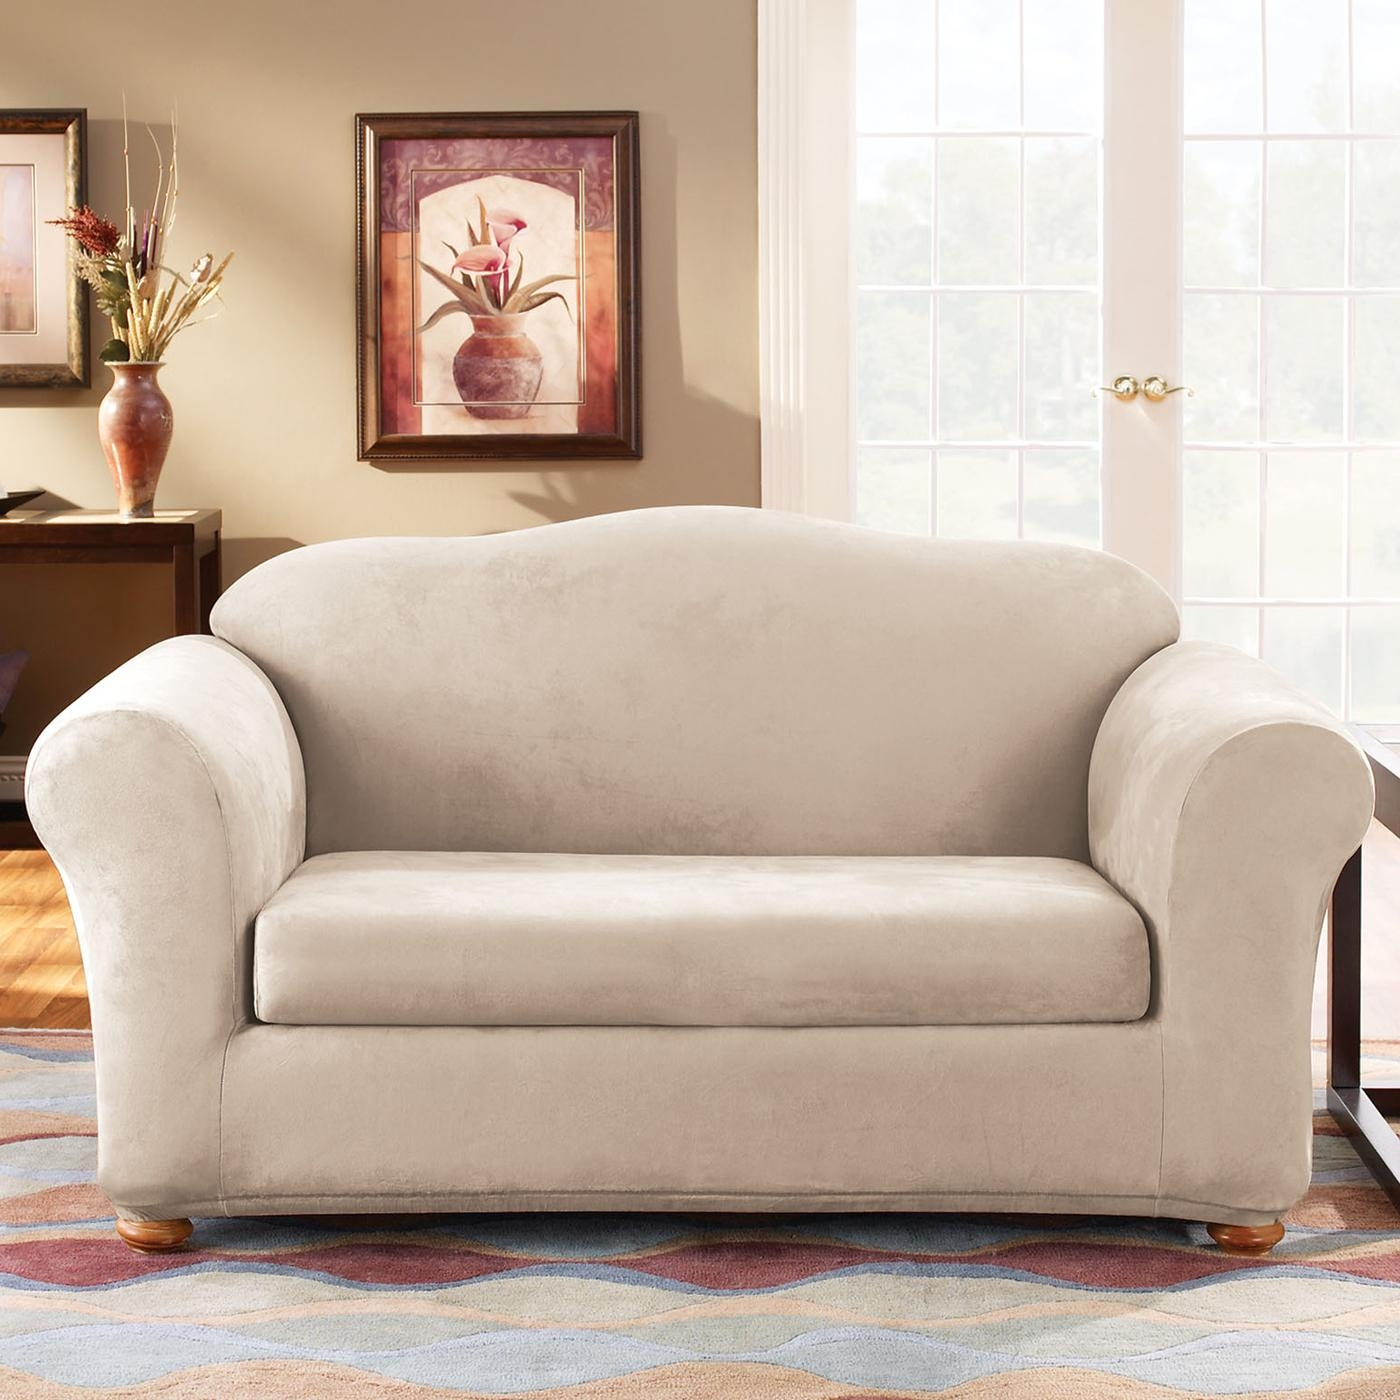 Living Room : Slipcovered Sleeper Sofa Slipcover Slipcovers For Inside 2 Piece Sofa Covers (View 13 of 27)